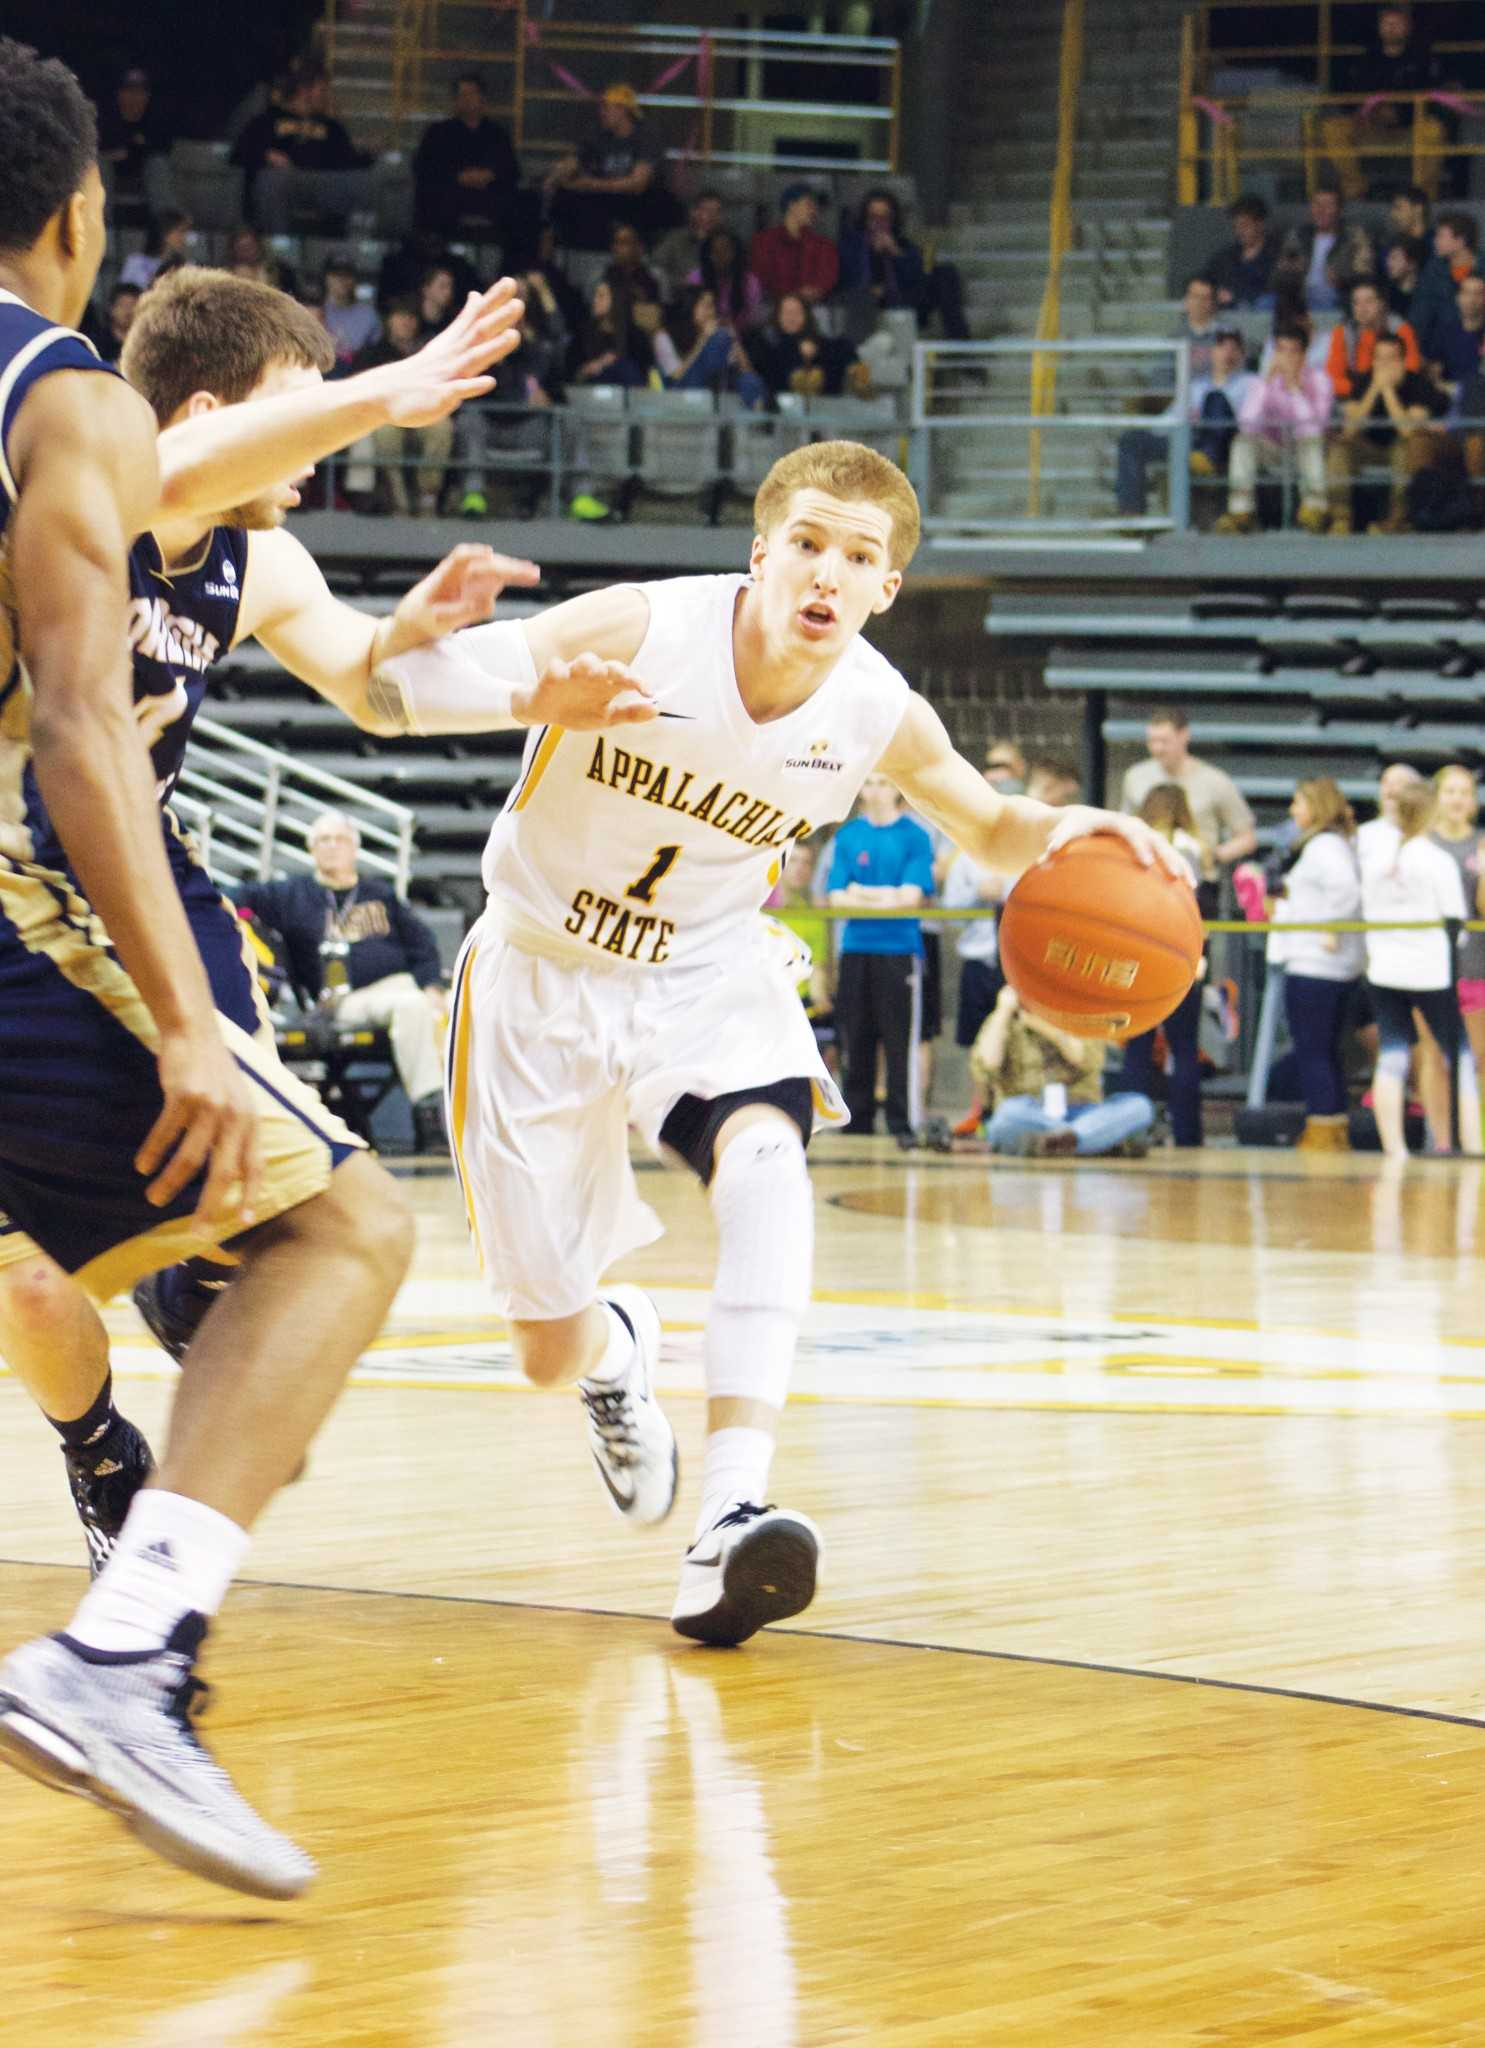 App State's Landon Goesling looks to enter the paint against Georgia Southern on Thursday night. The Mountaineers were defeated by the Eagles 77-58.